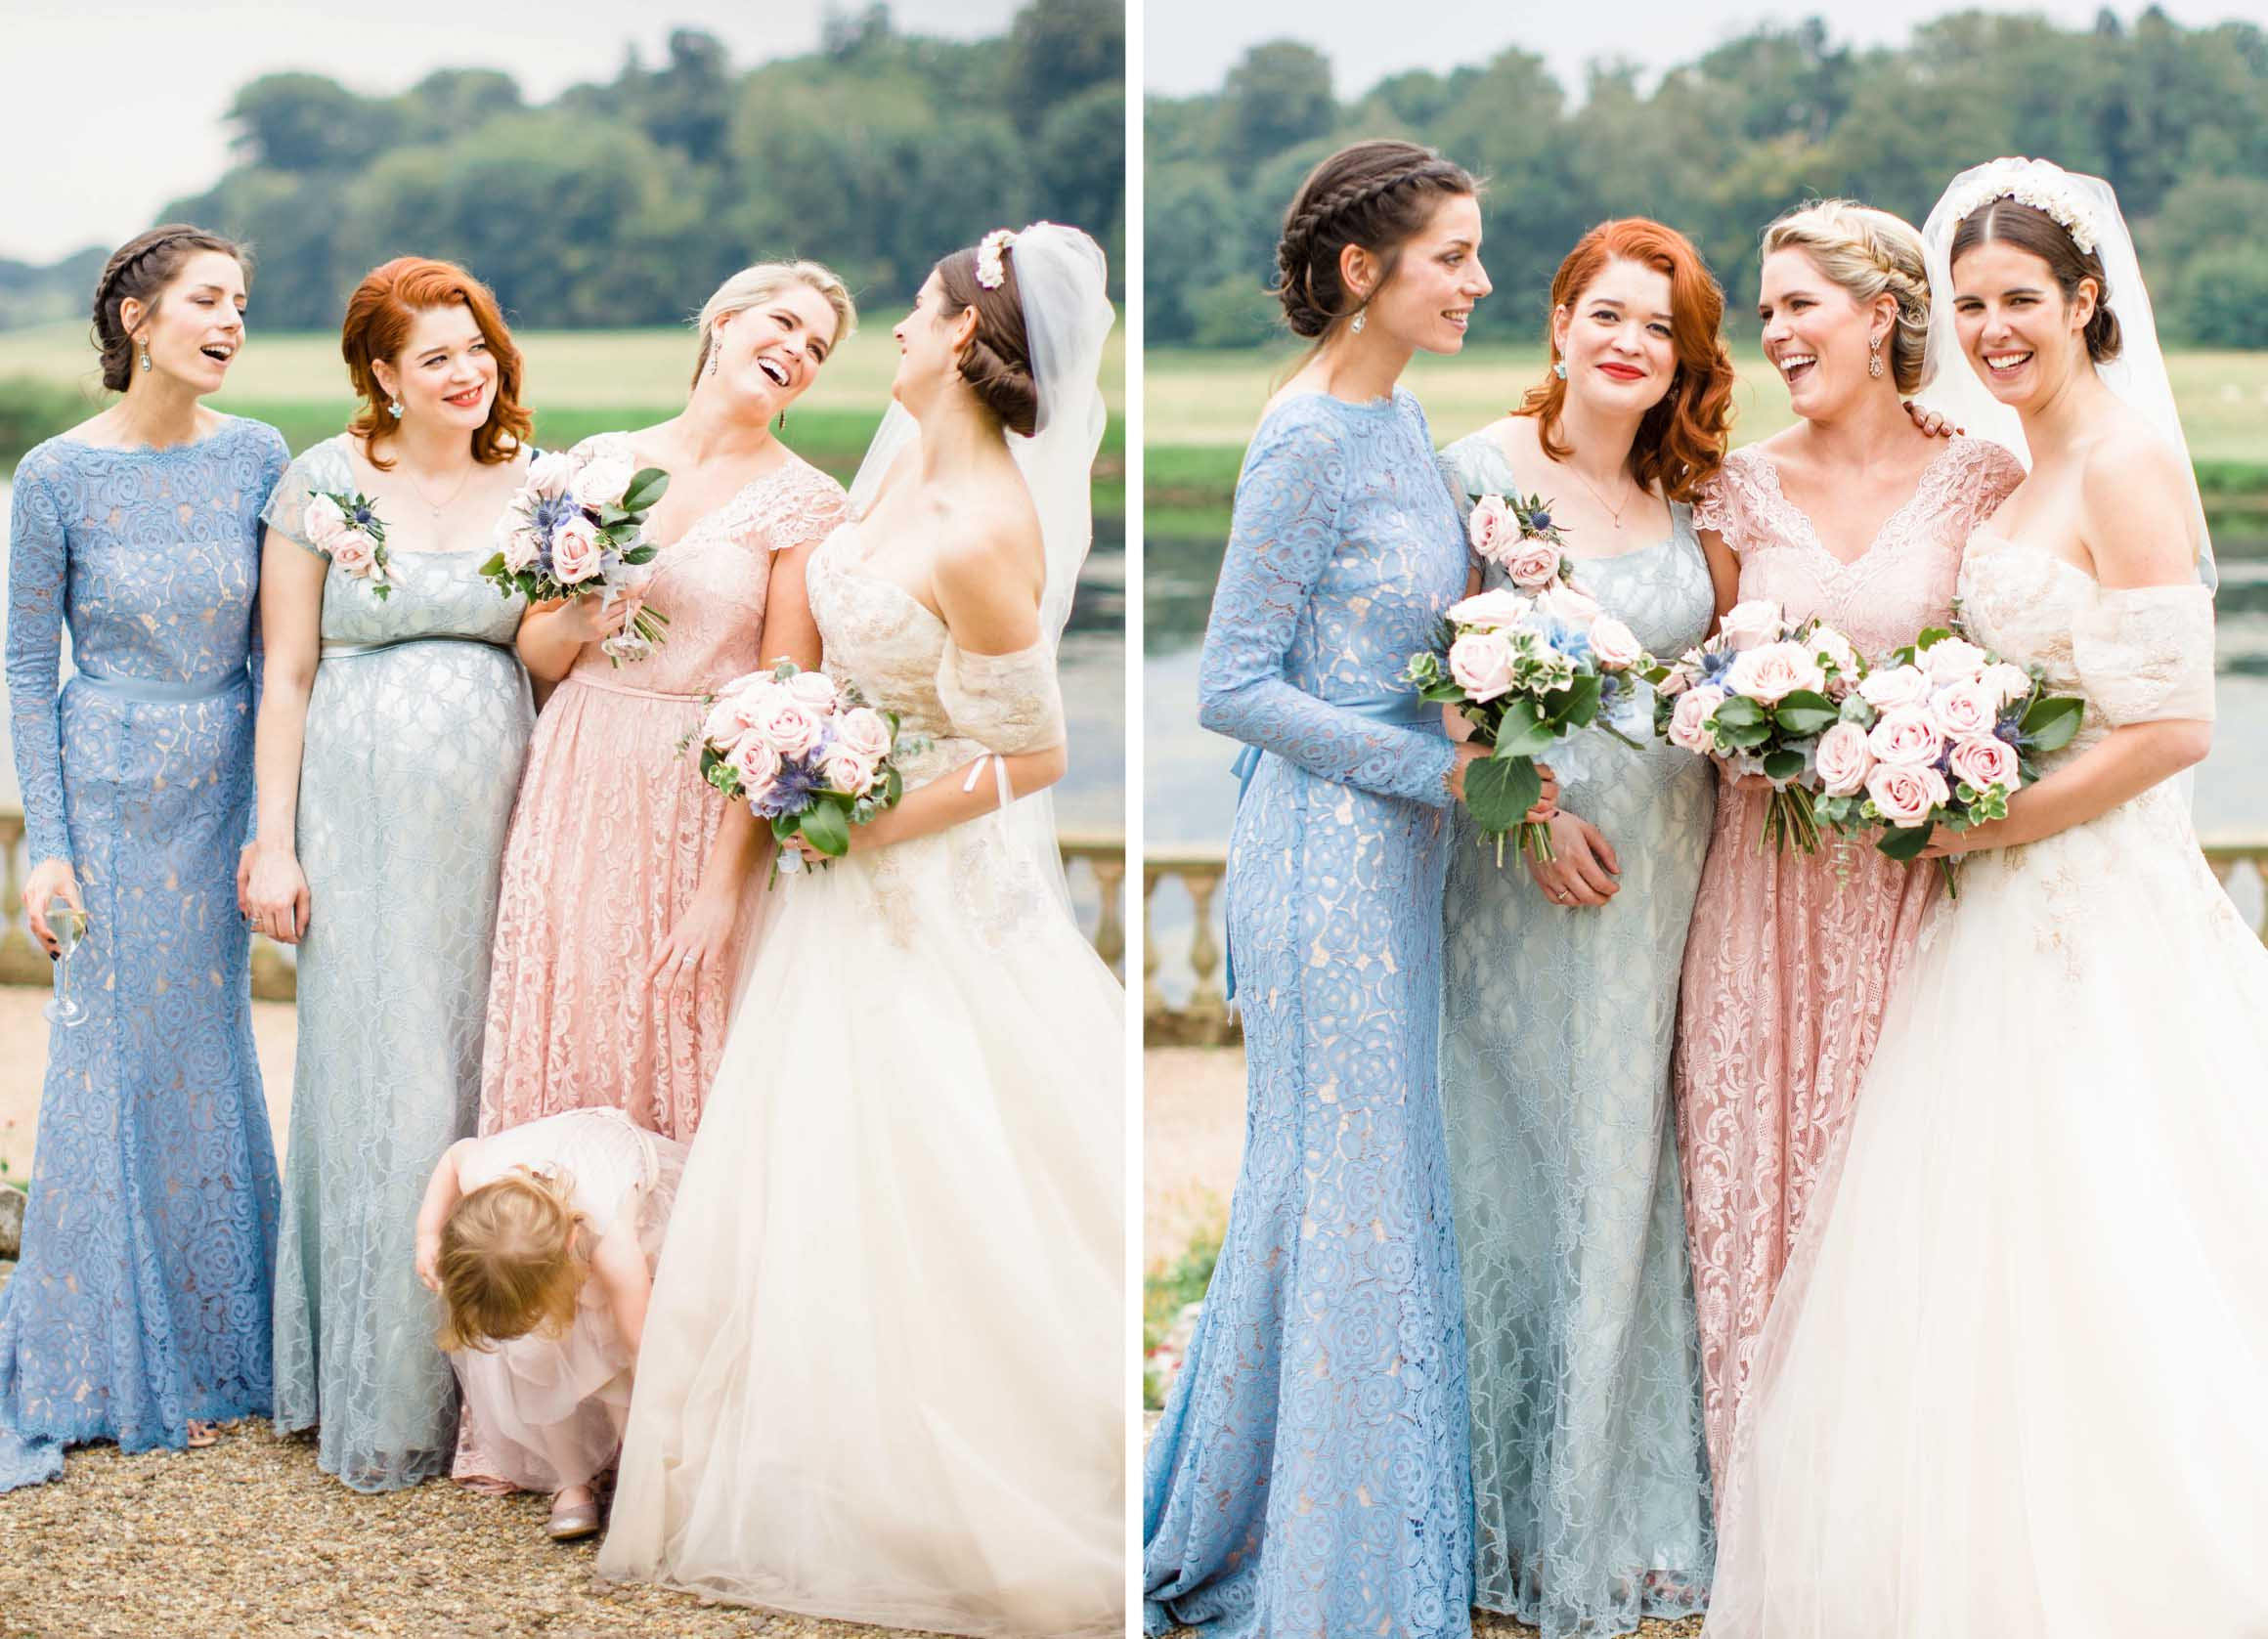 Amy O'Boyle Photography- Destination & UK Fine Art Film Wedding Photographer- Stoneleigh Abbey Wedding 9.jpg